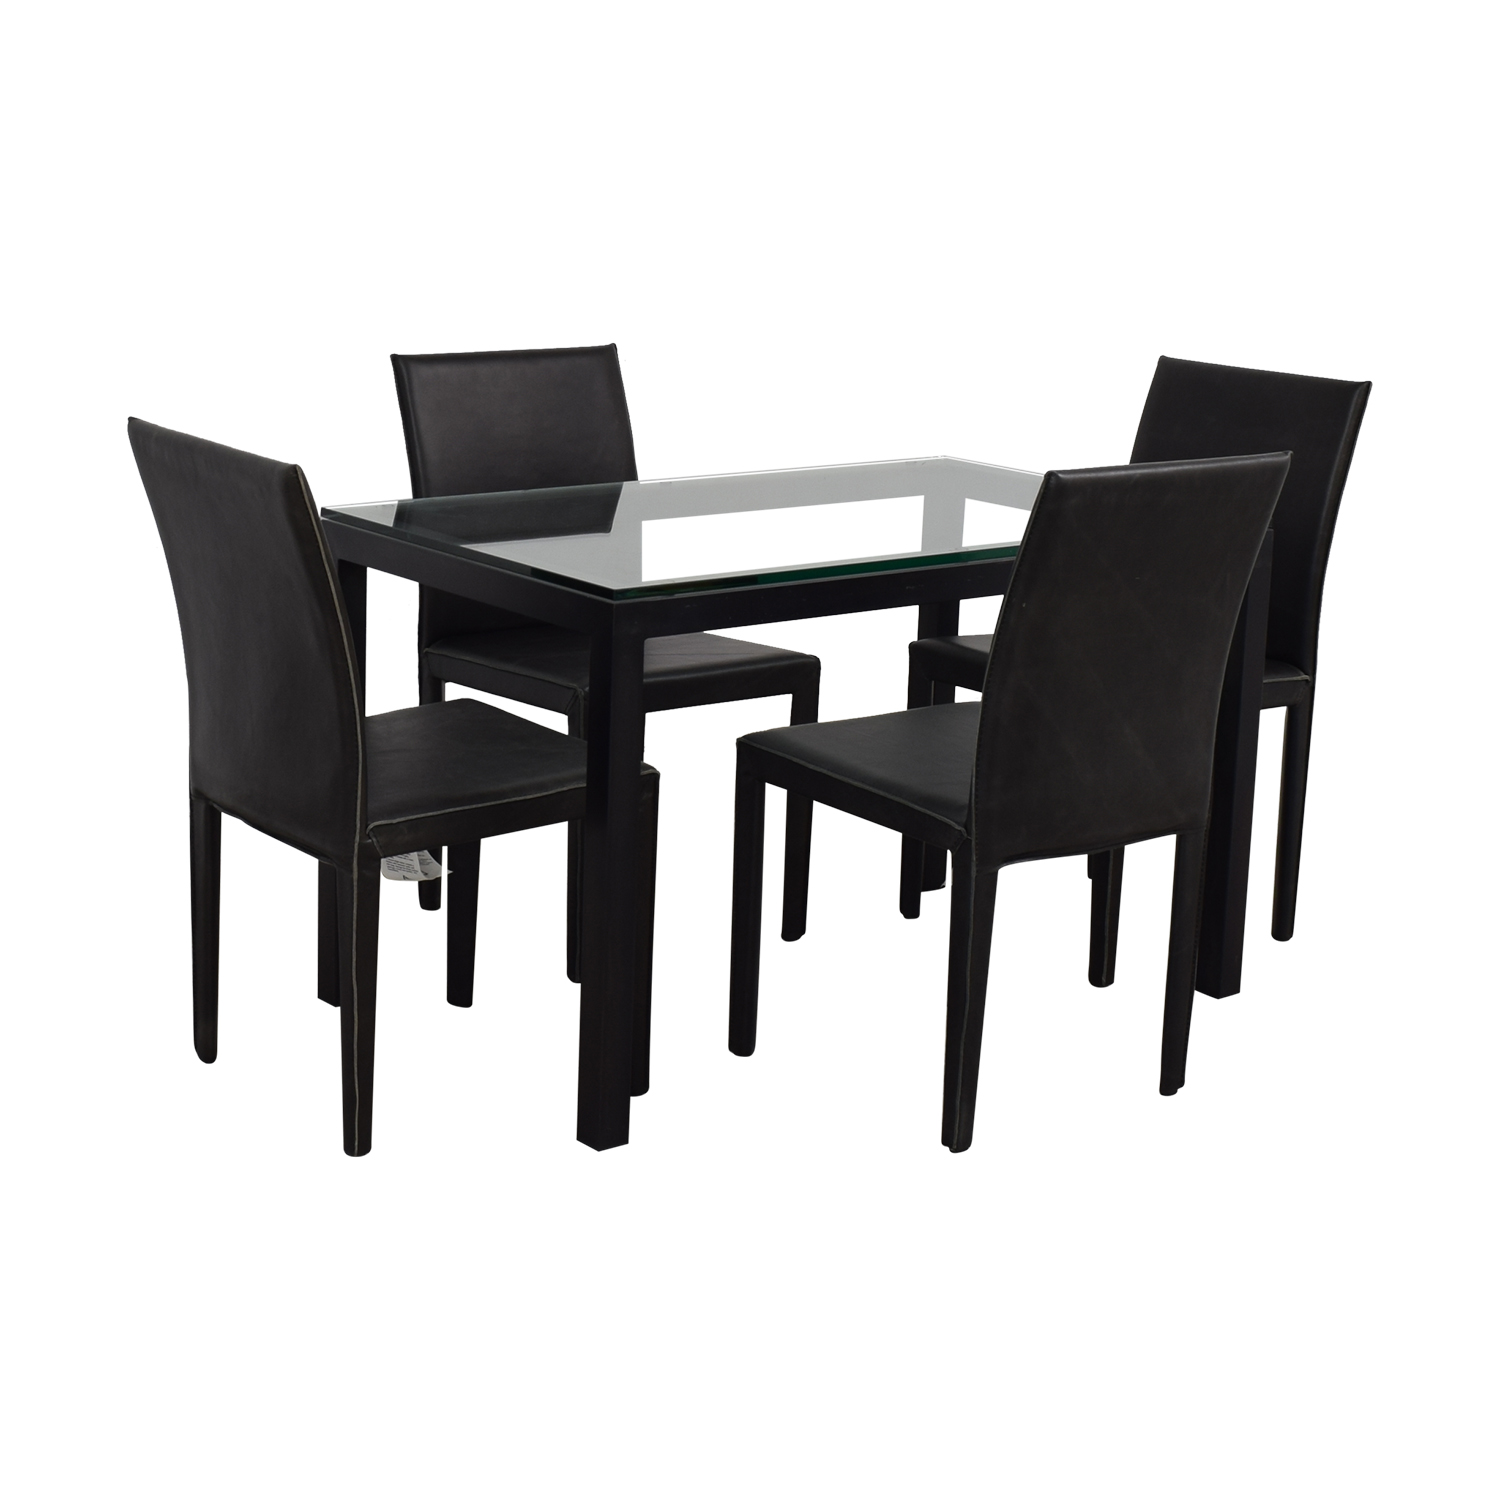 shop Crate & Barrel Crate & Barrel Maria Yee Glass and Black Dining Set online